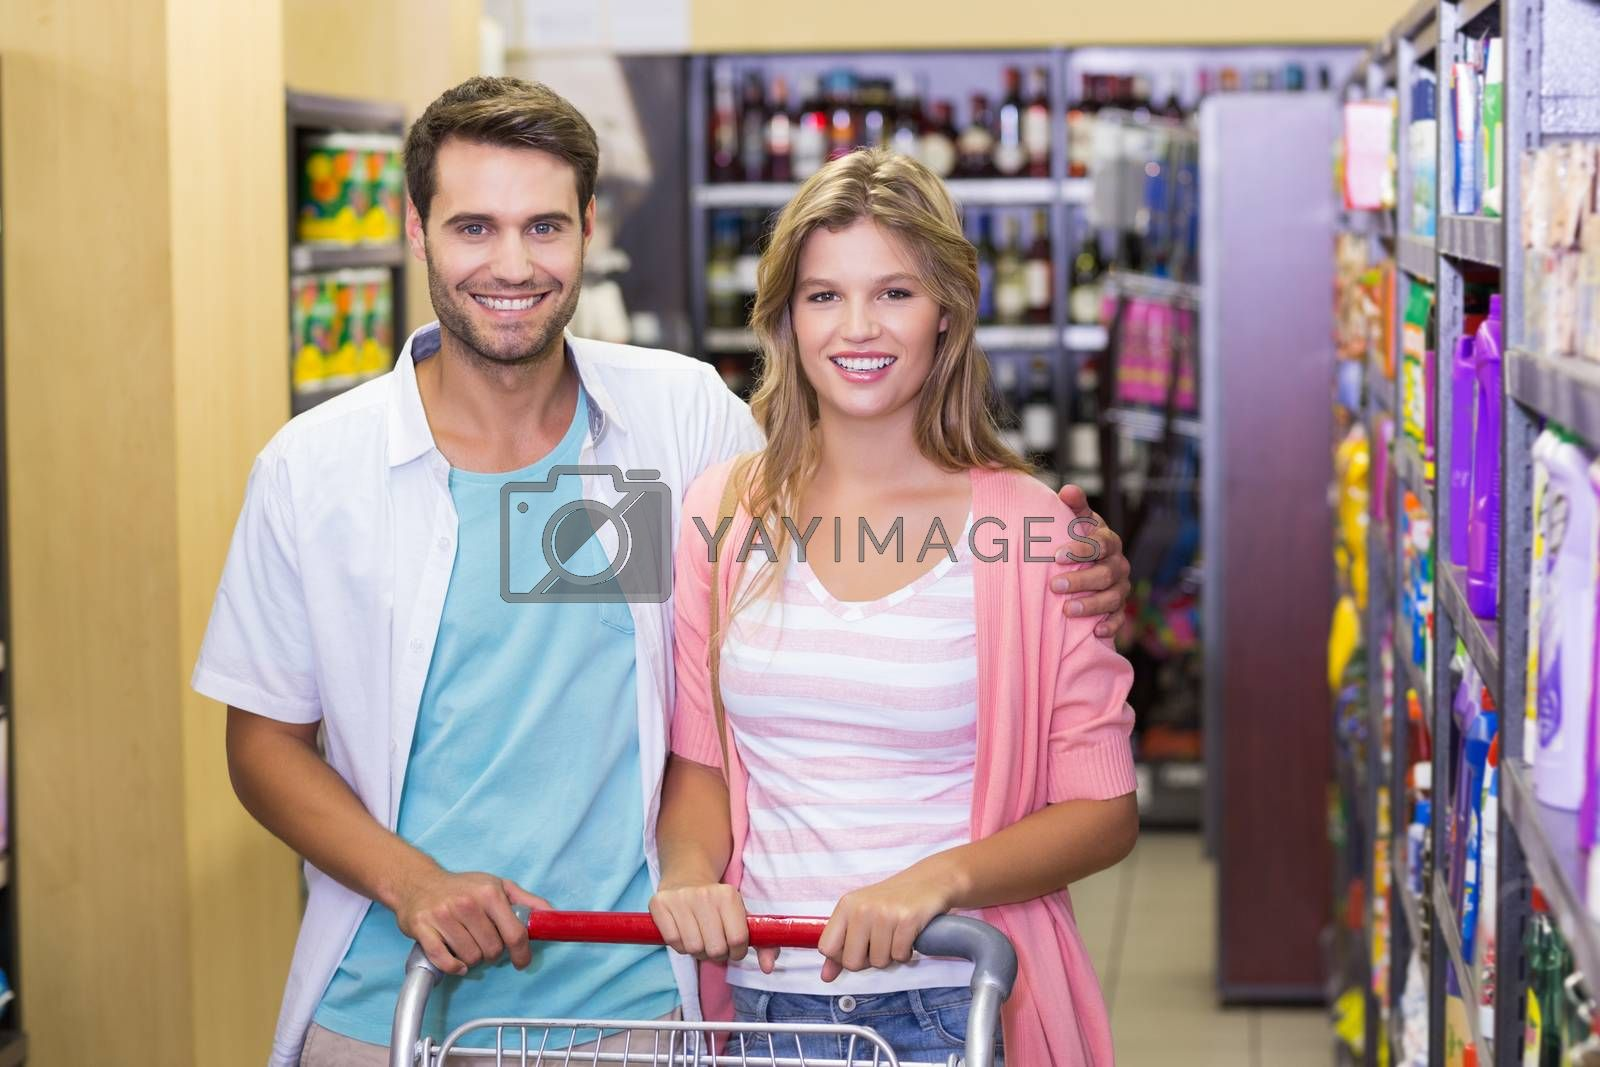 Royalty free image of Portrait of smiling bright couple with arm around  by Wavebreakmedia